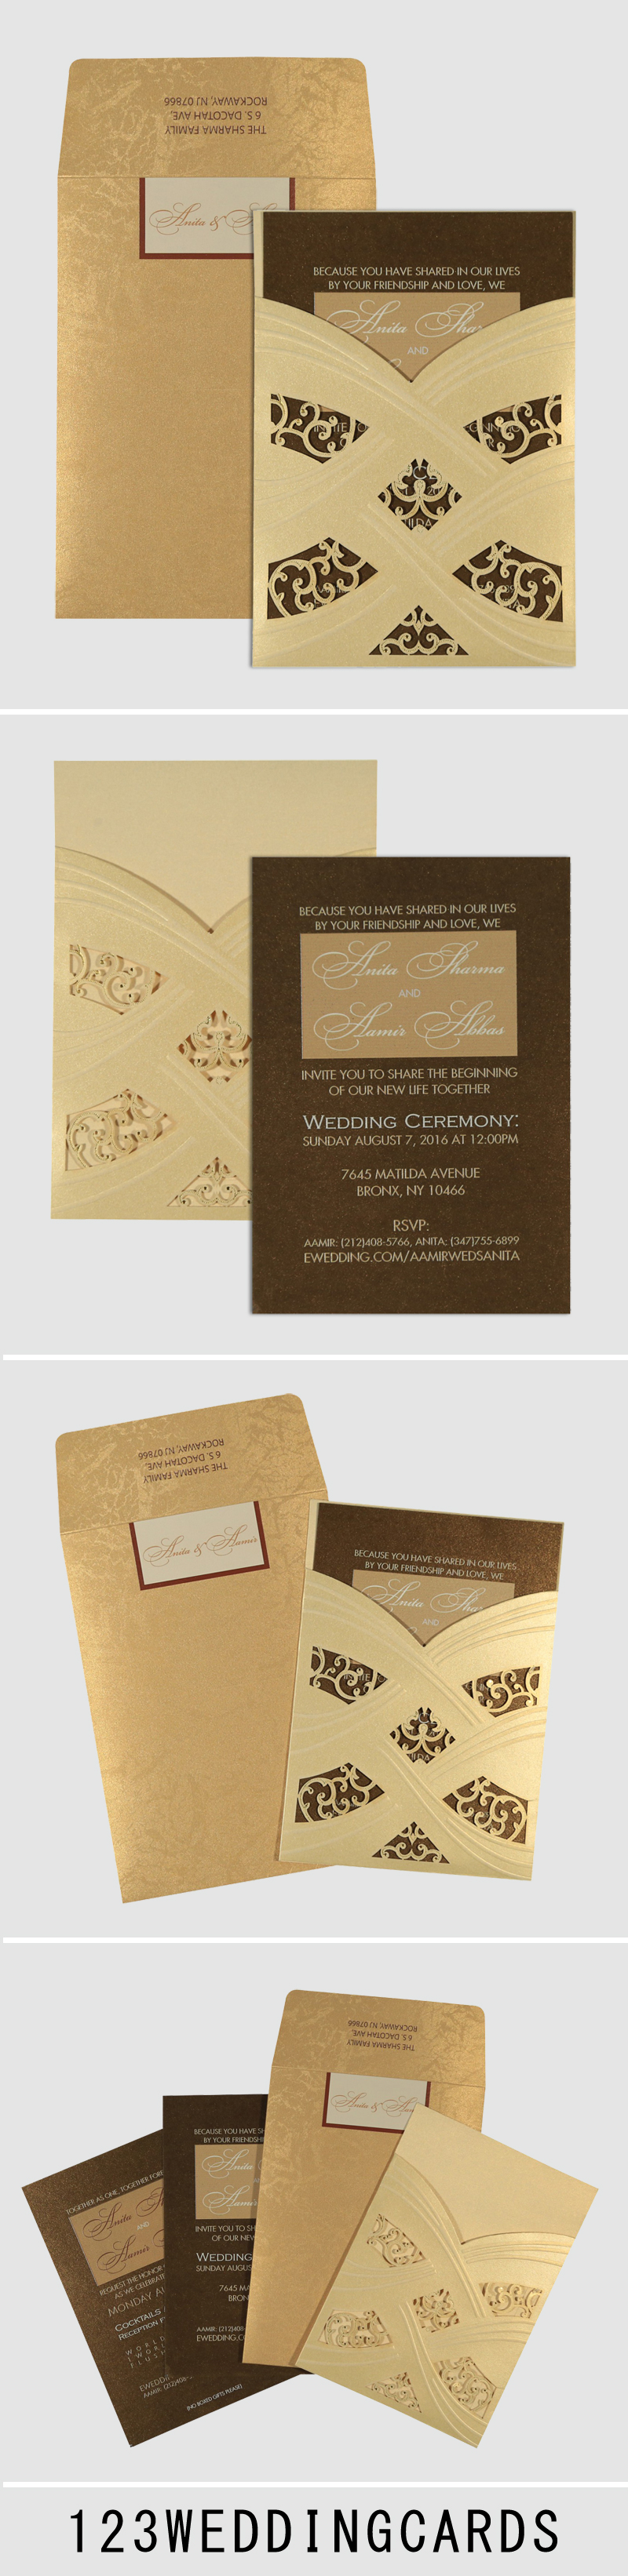 e wedding invitation for friends%0A Ivory shimmery laser cut wedding invitations   d